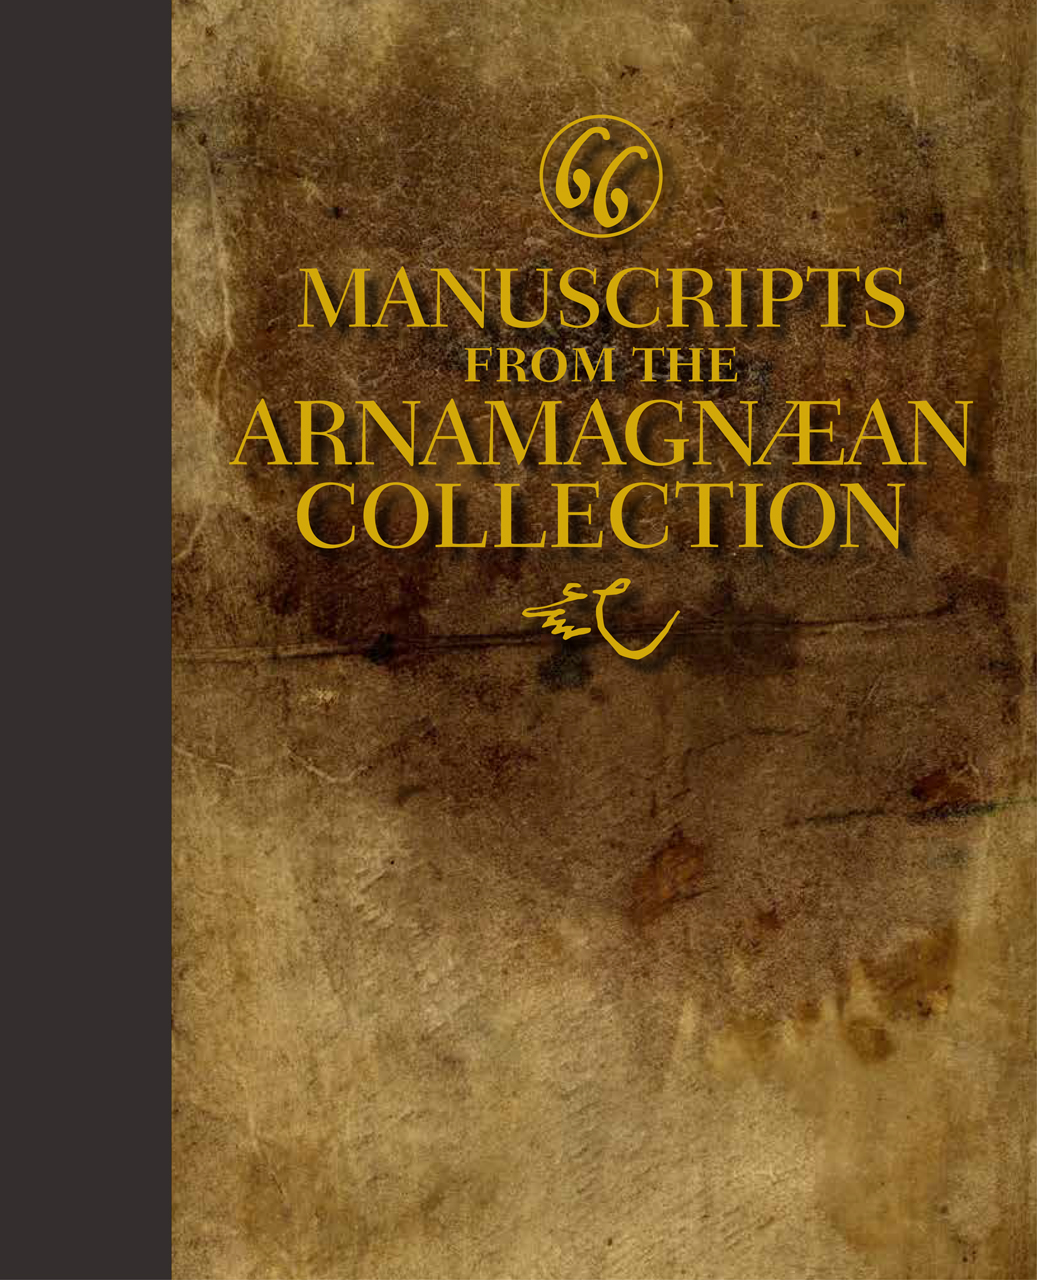 Sixty-Six Manuscripts From the Arnamagnæan Collection